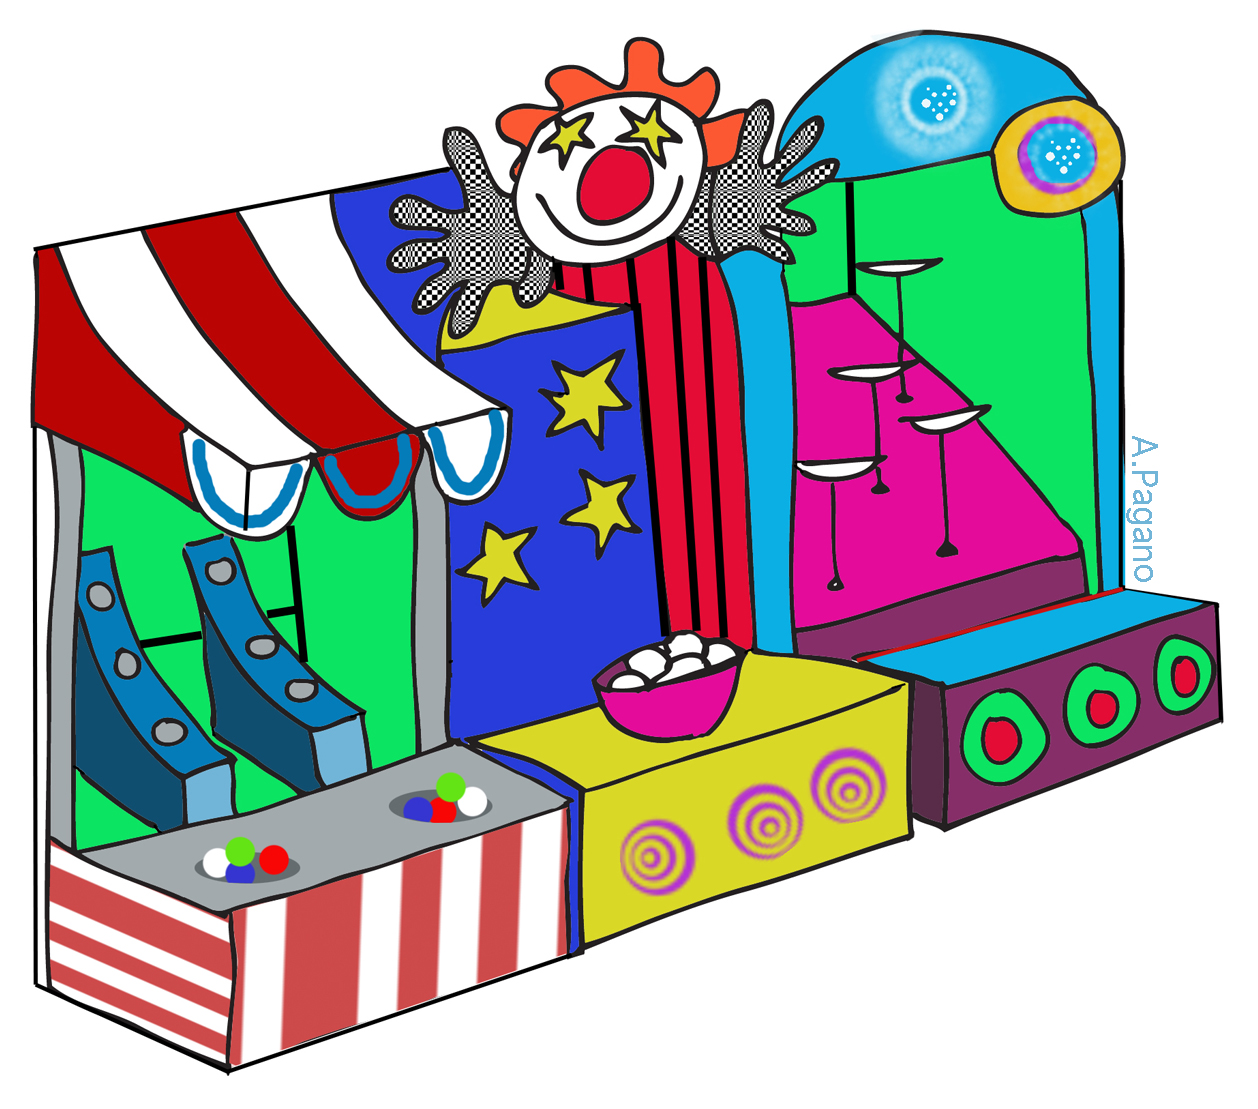 Carnival clipart ticket booth Carnival Savoronmorehead Clip ticket Art